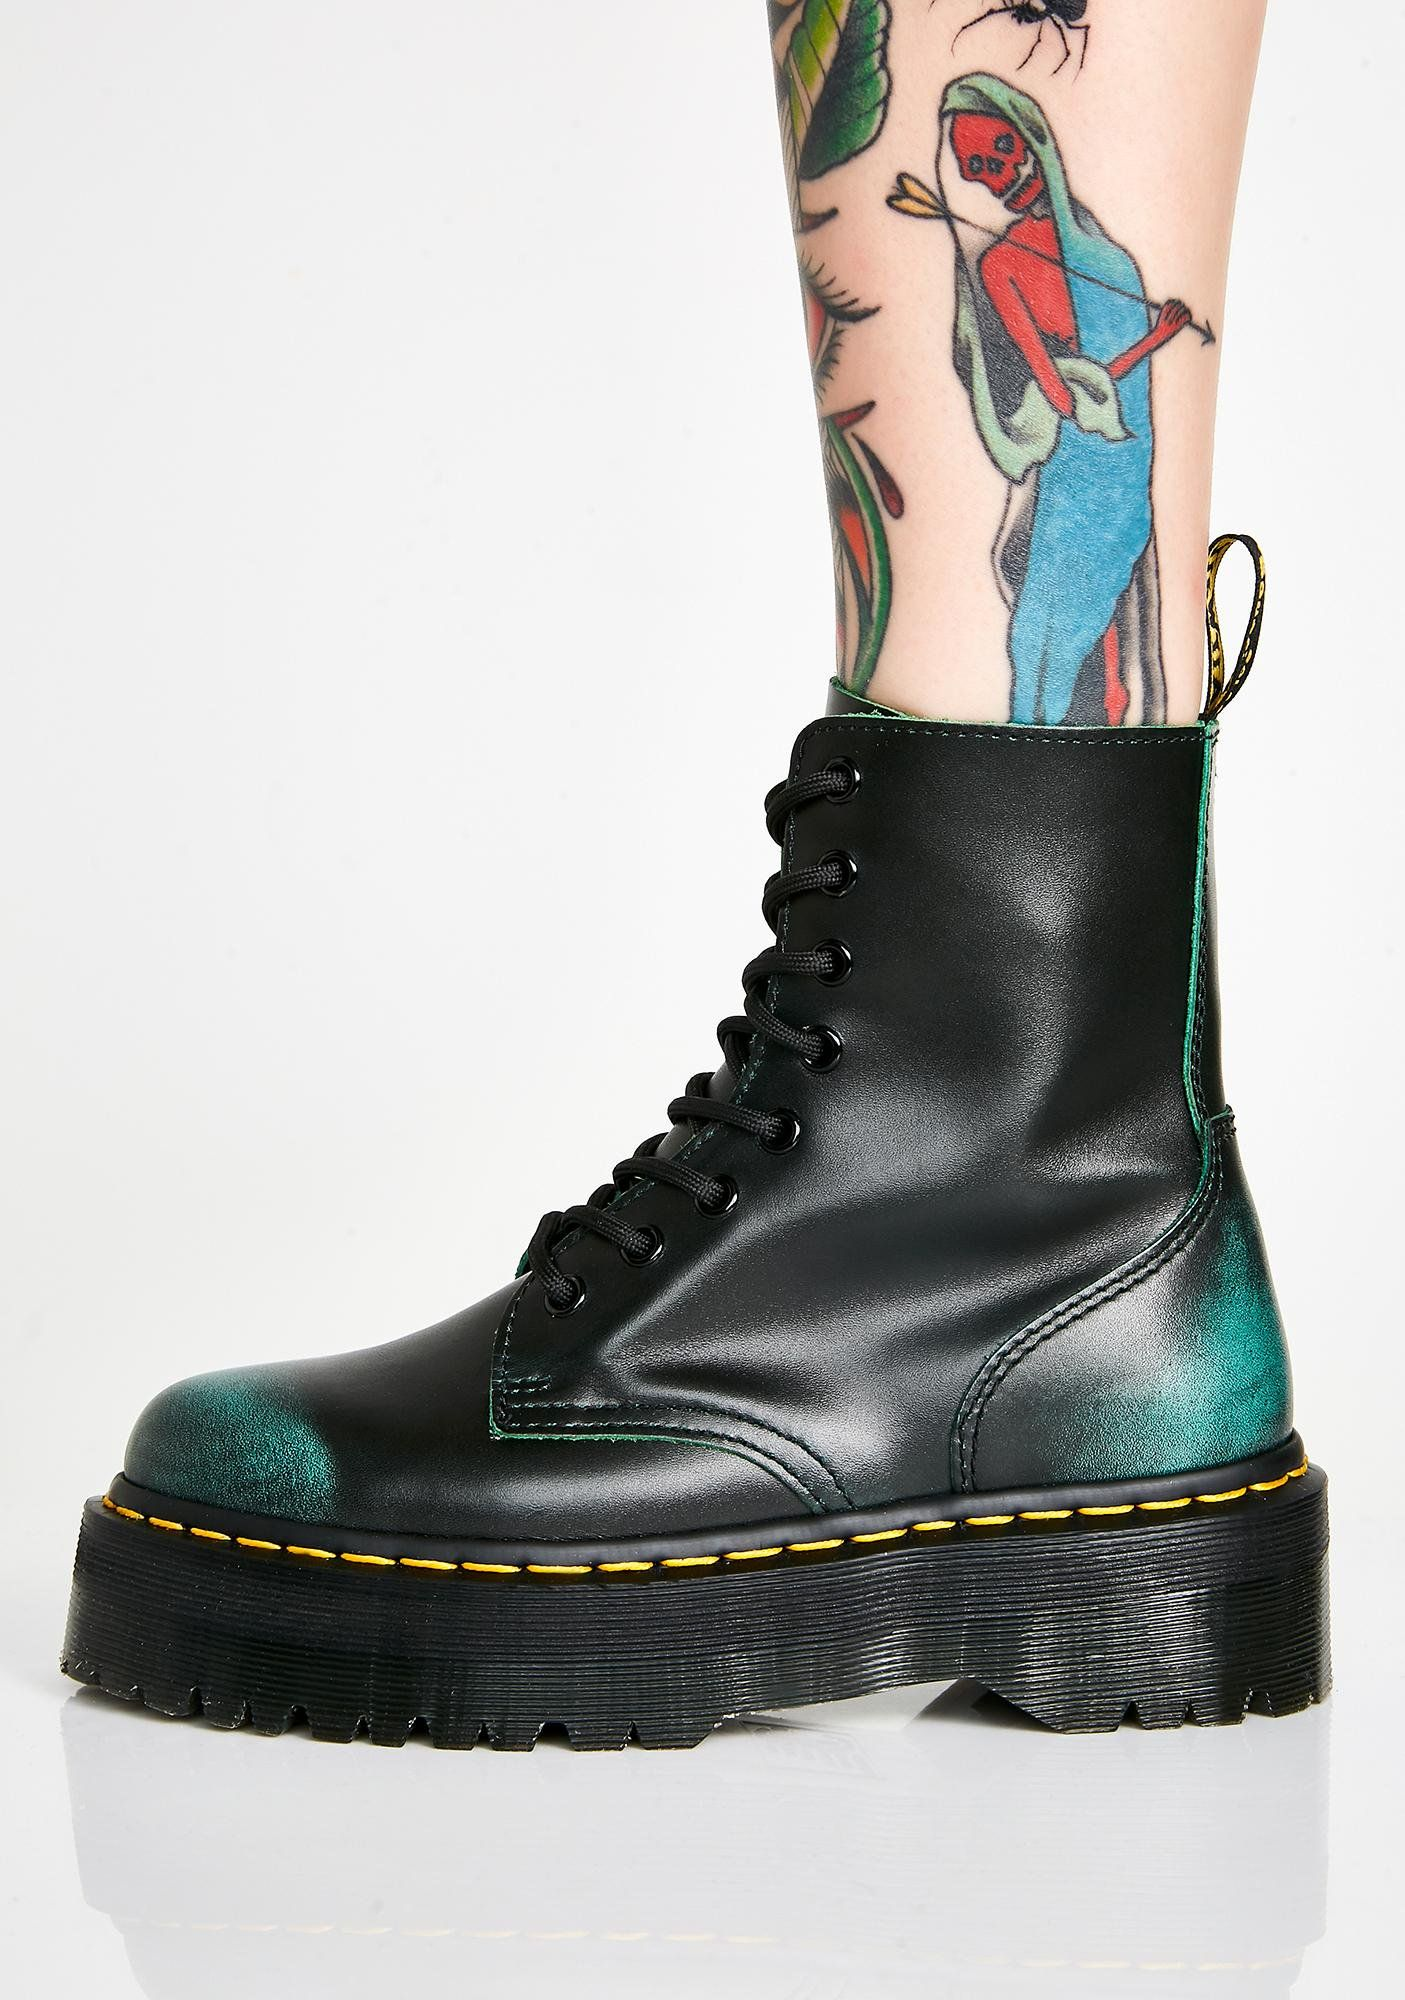 b97dcc062 Jadon Vintage Boots in 2019 | wearable | Vintage boots, Boots ...